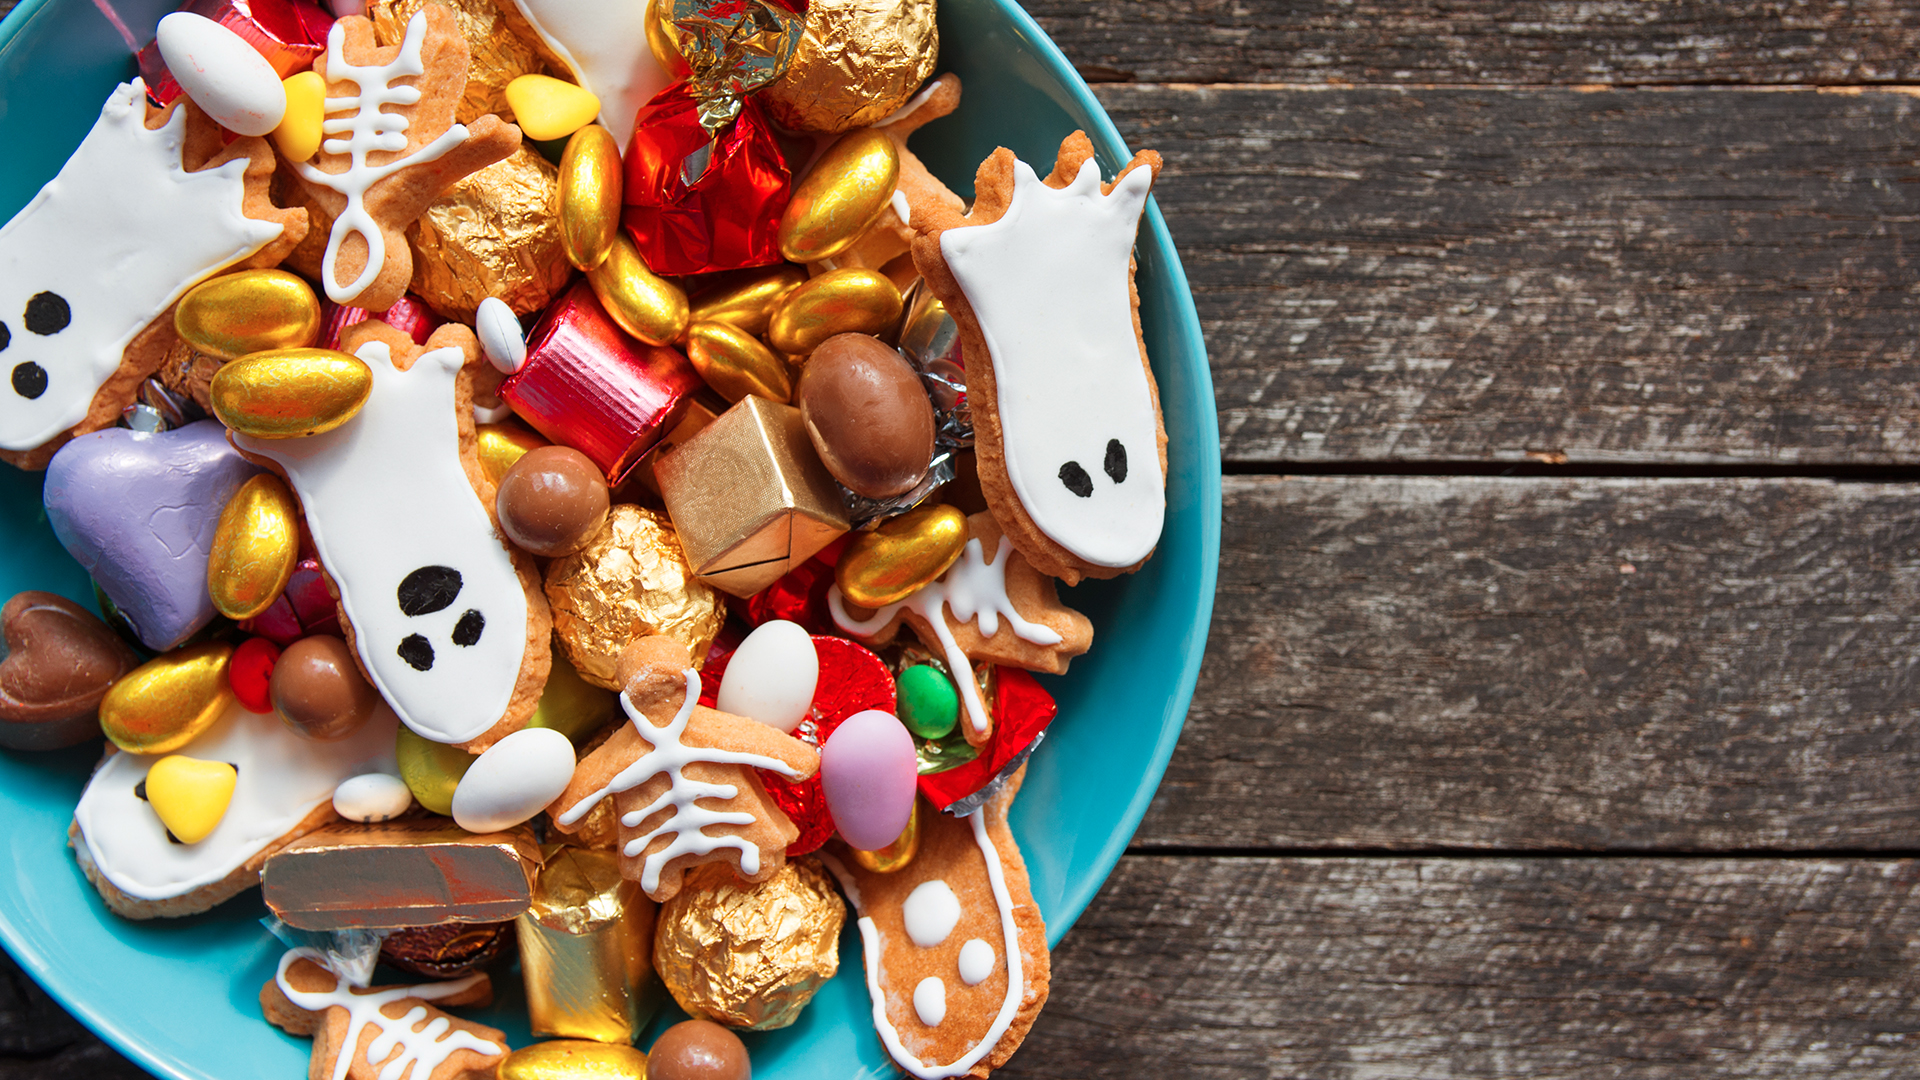 18 Nut-Free Halloween Candy To Give Out This Year